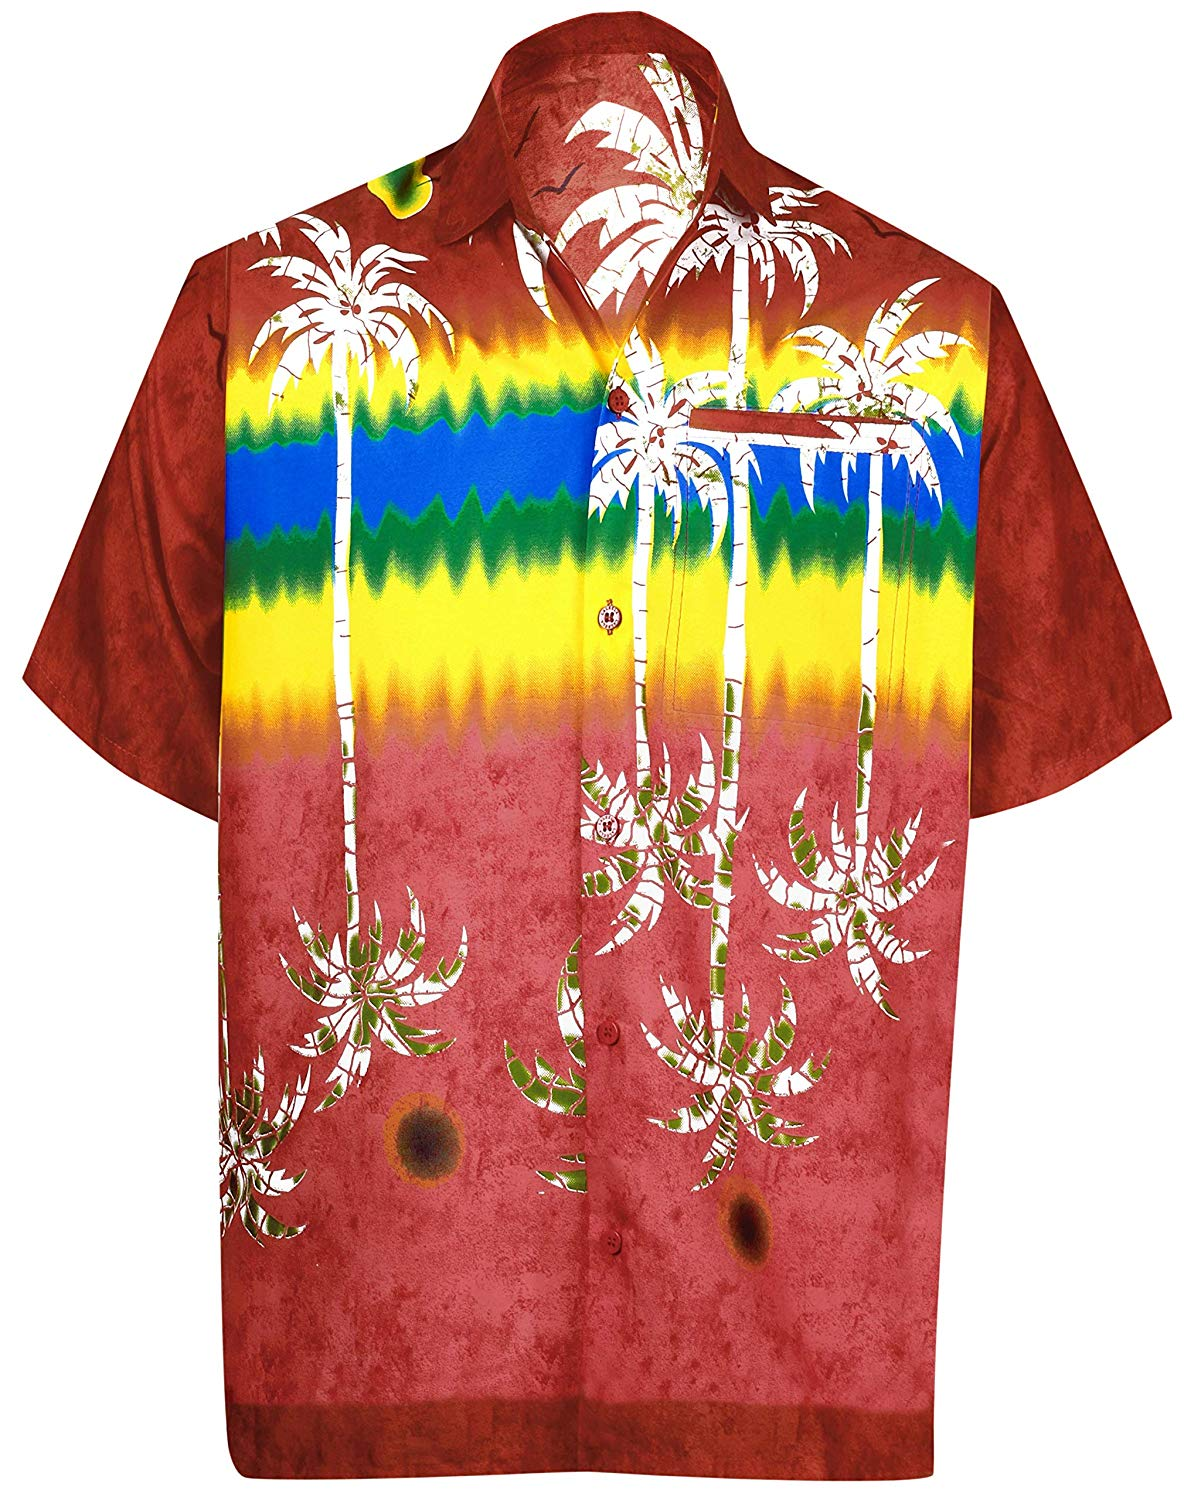 HTOOHTOOH Mens Aloha Hawaiian Shirt Button Down Casual Short Sleeve Shirt